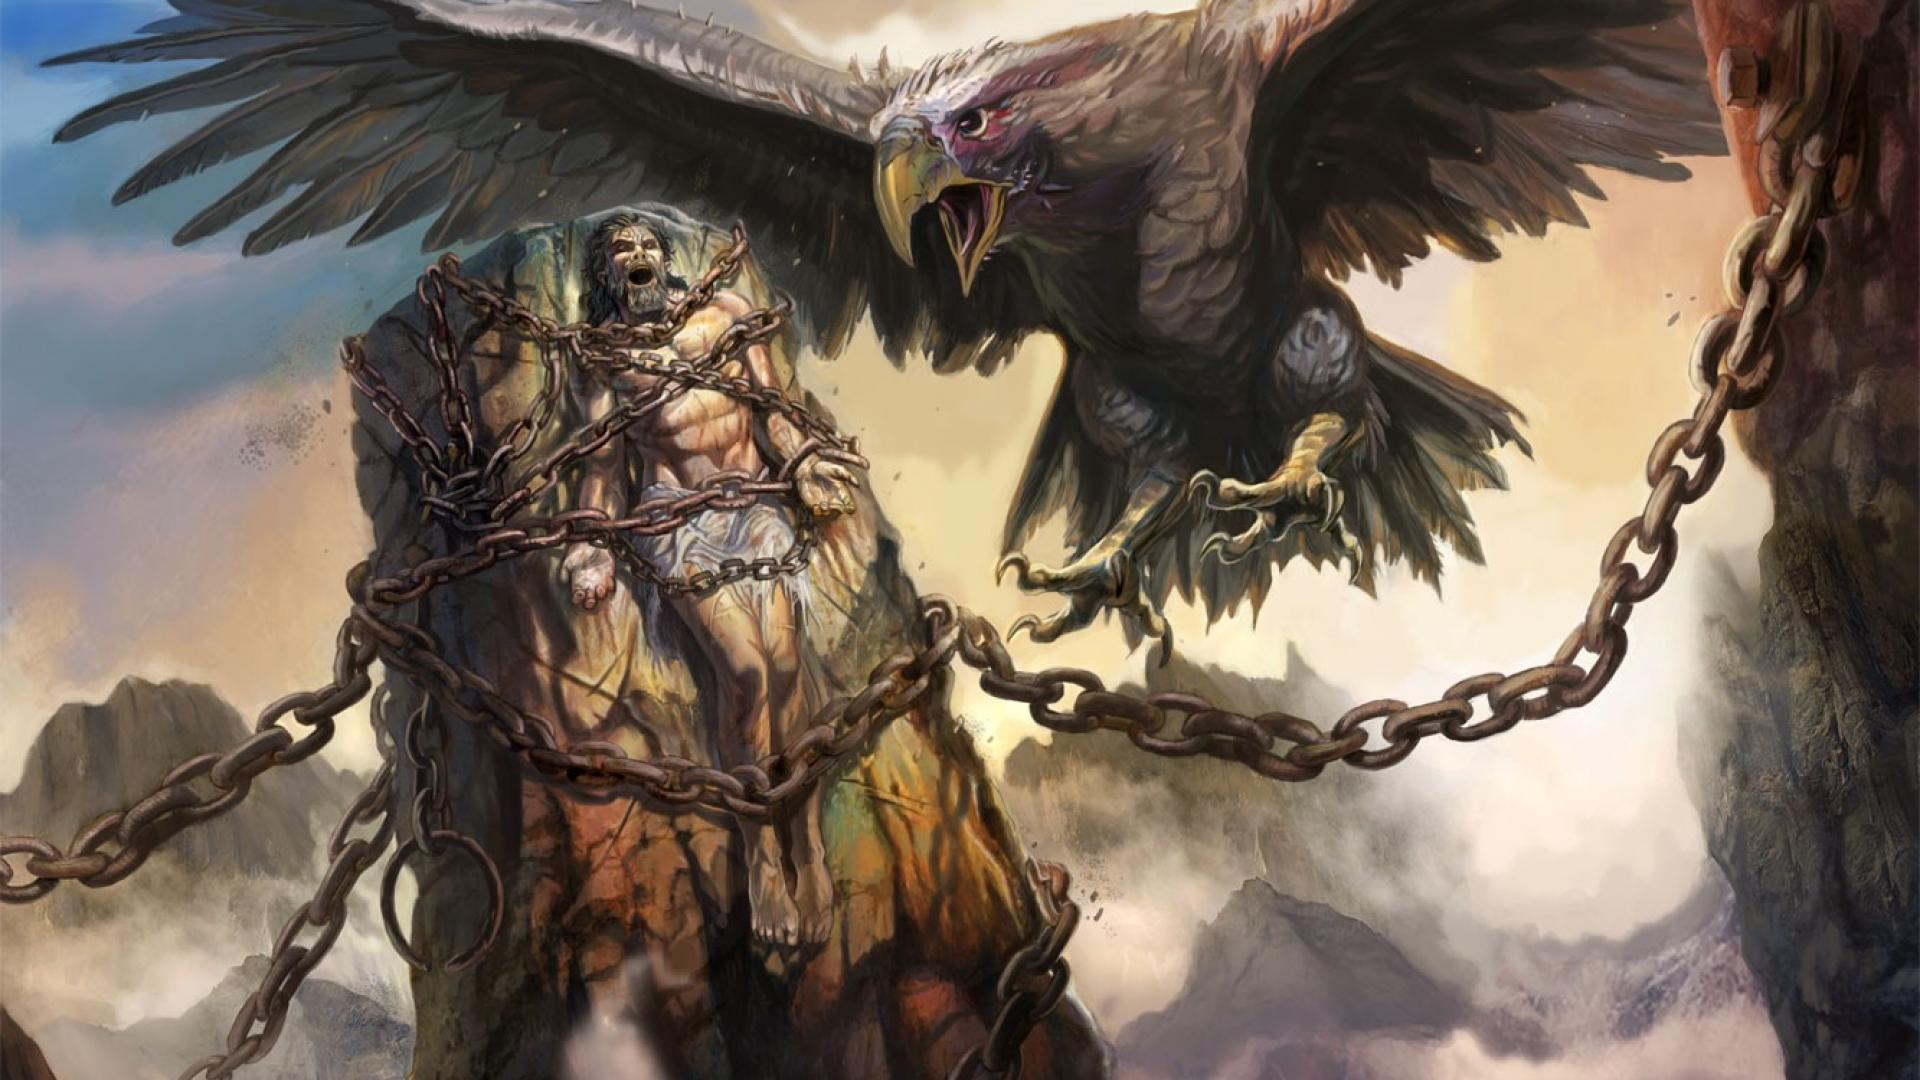 Rocks eagles fantasy art prometheus chains greek mythology wallpaper 1920x1080